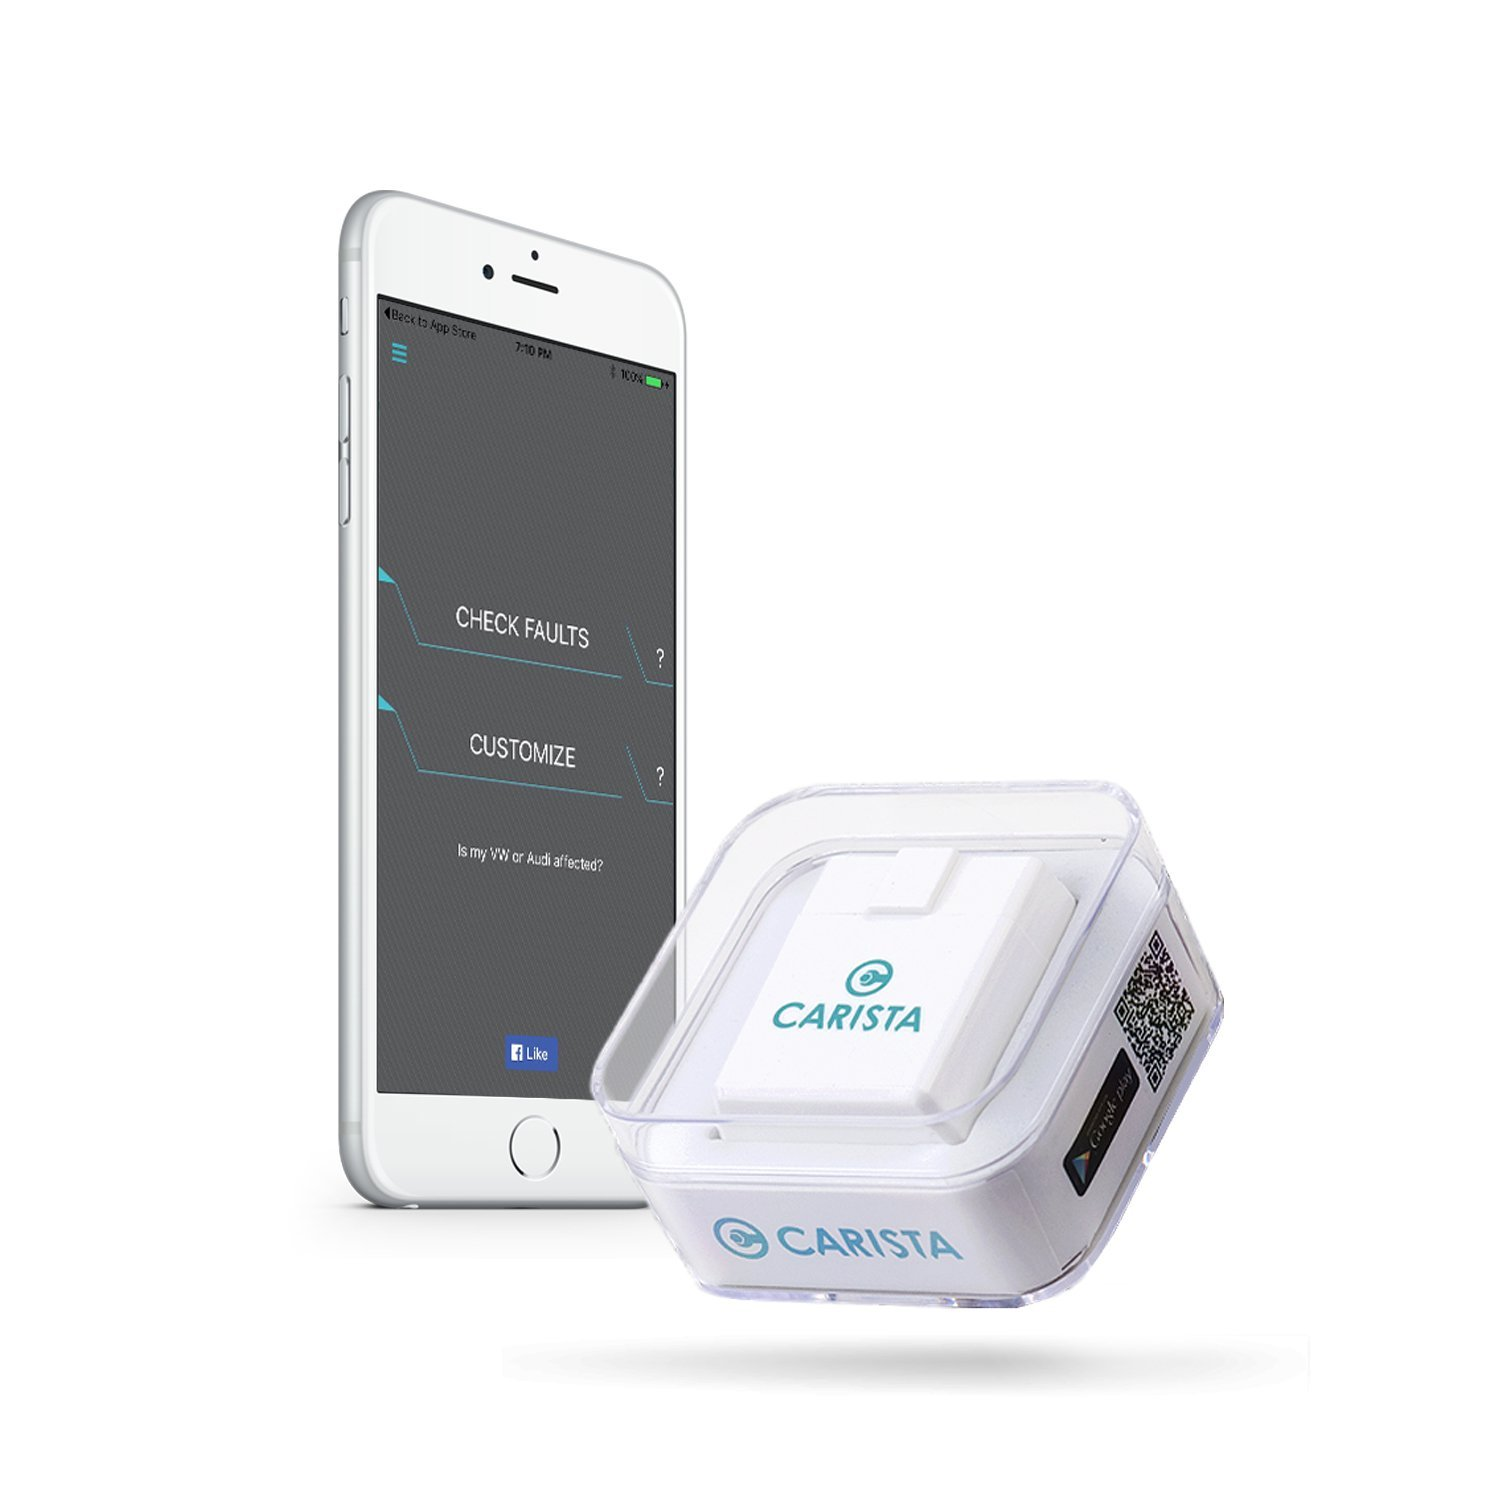 Carista Bluetooth Adapter & Scanner - IoT - Internet of Things